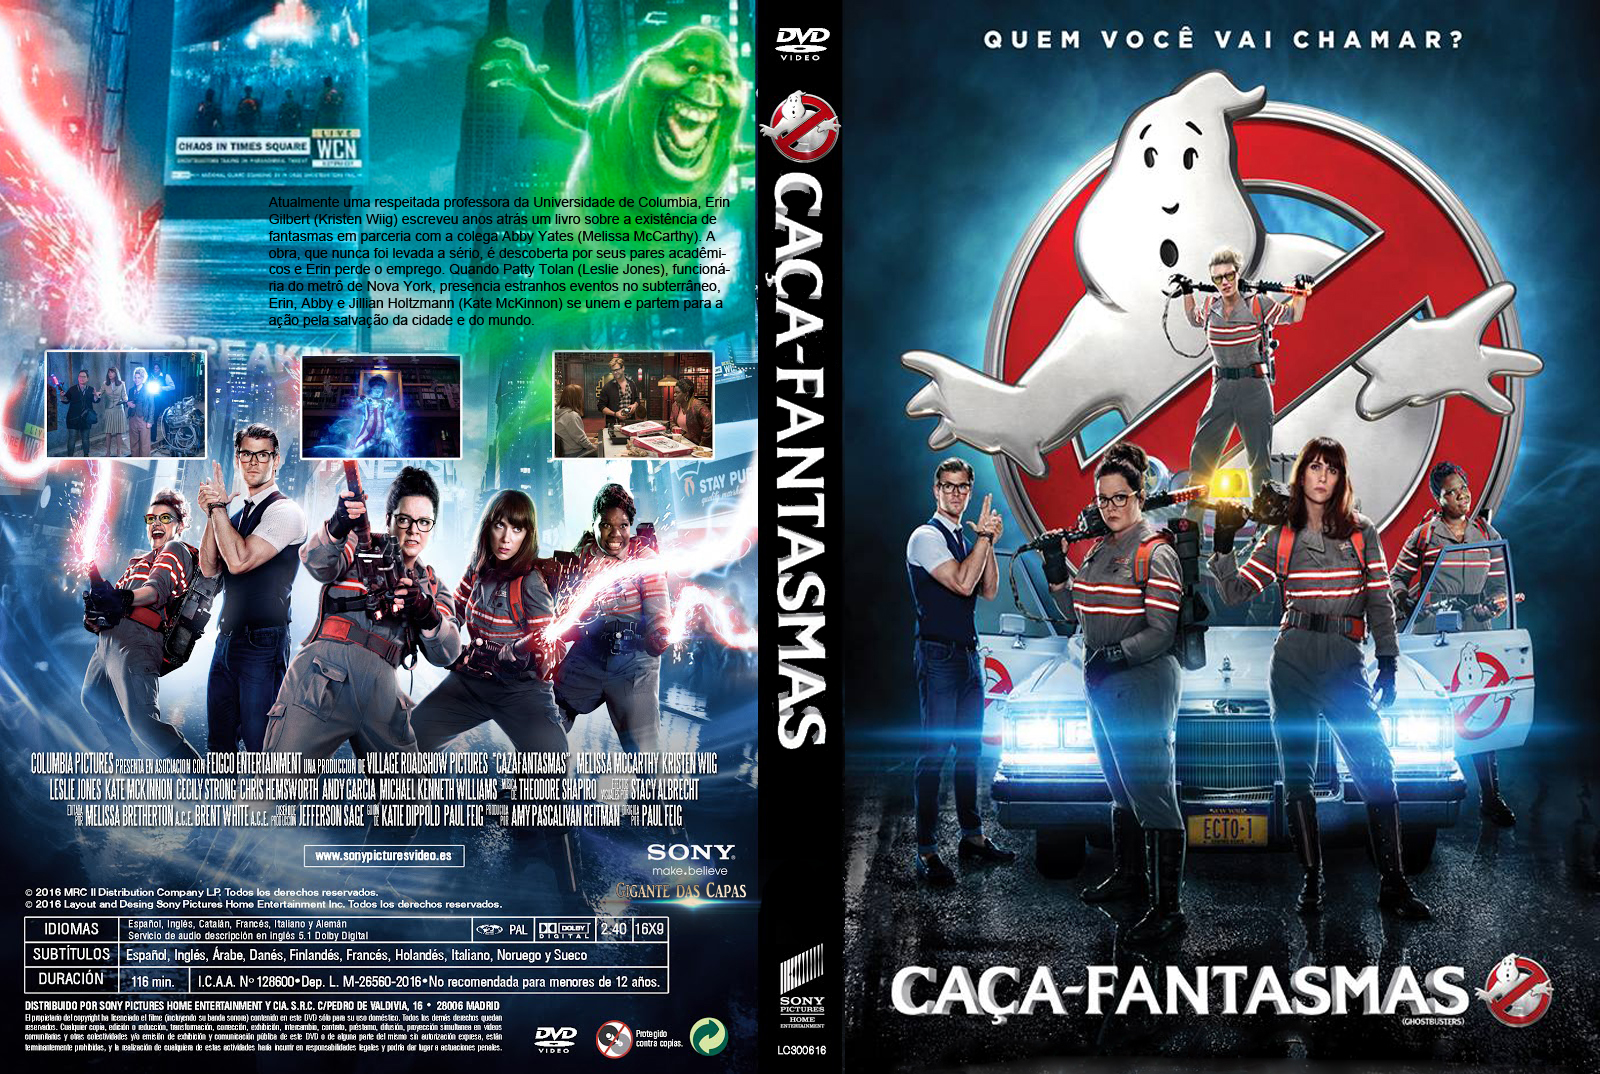 Download Caça-Fantasmas BDRip Dual Áudio Download Caça-Fantasmas BDRip Dual Áudio Ca 25C3 25A7a Fantasmas 2B 25282016 2529